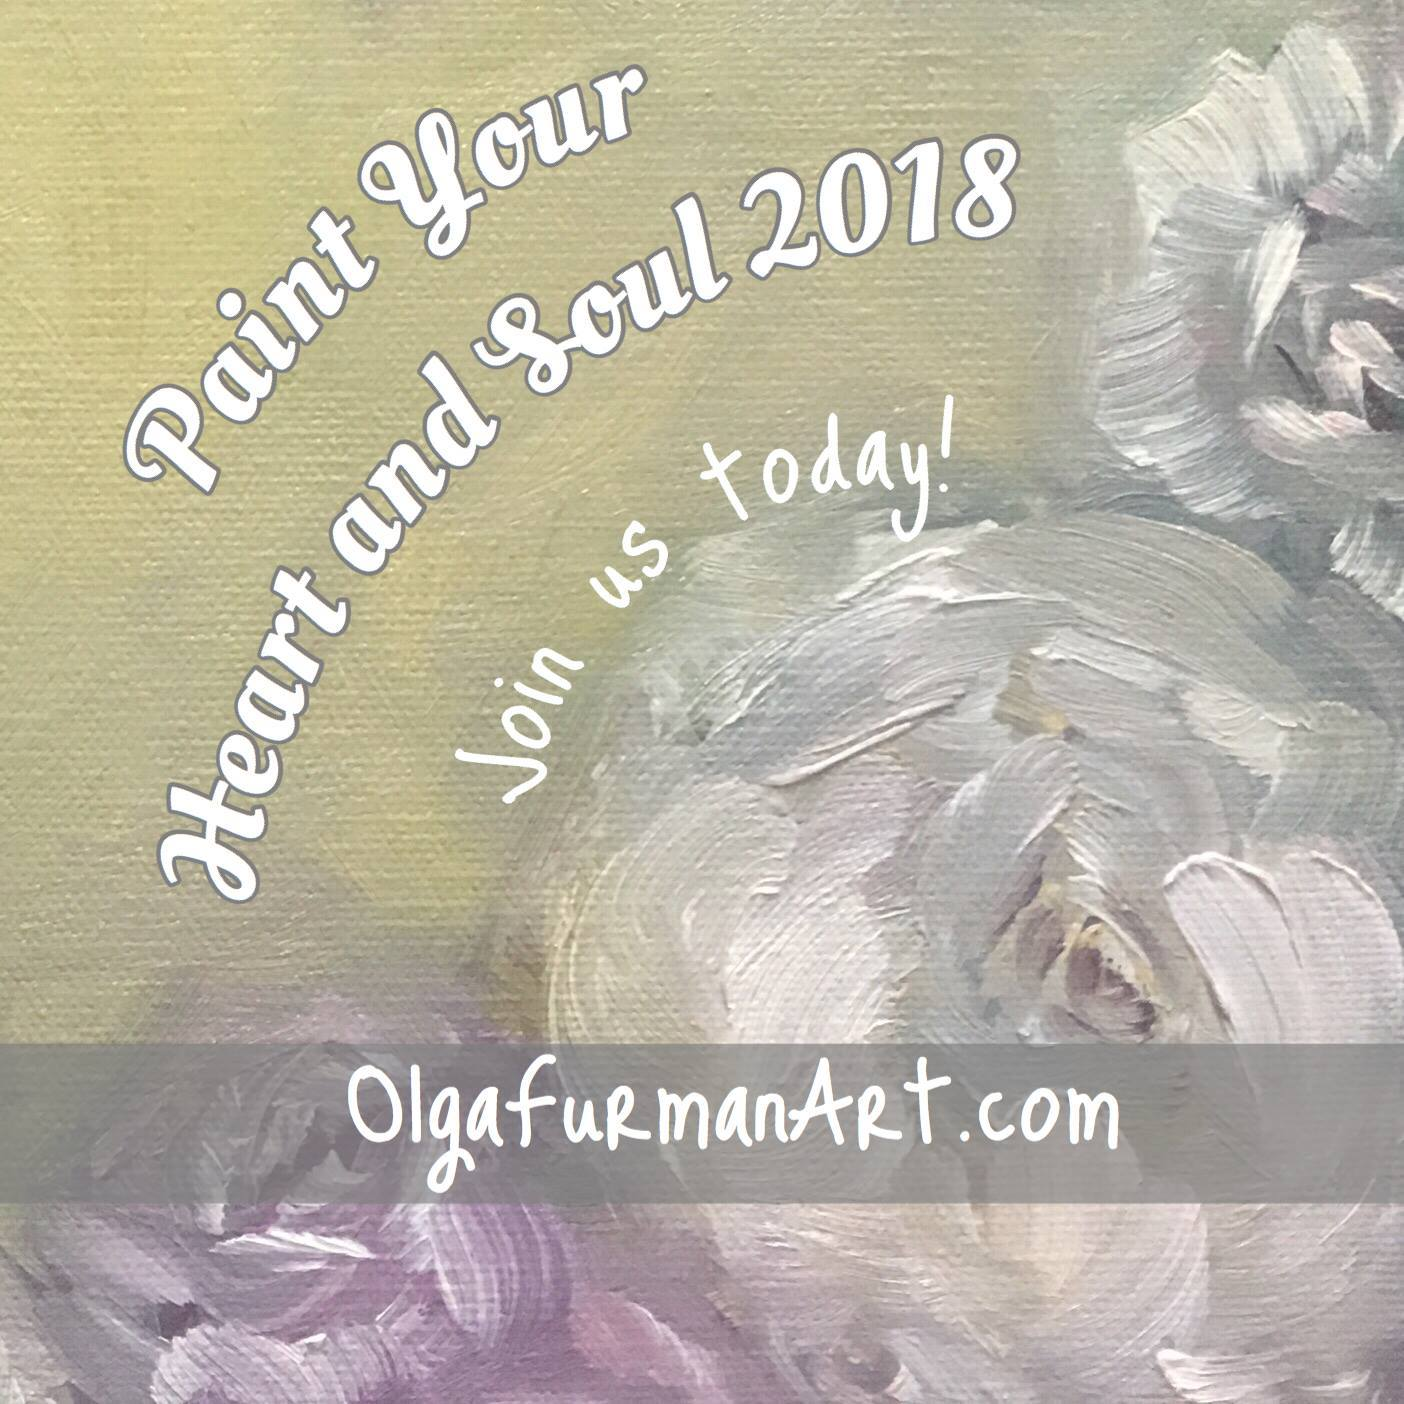 PAINT YOUR HEART & SOUL ~ BEGINNING JAN. 2018